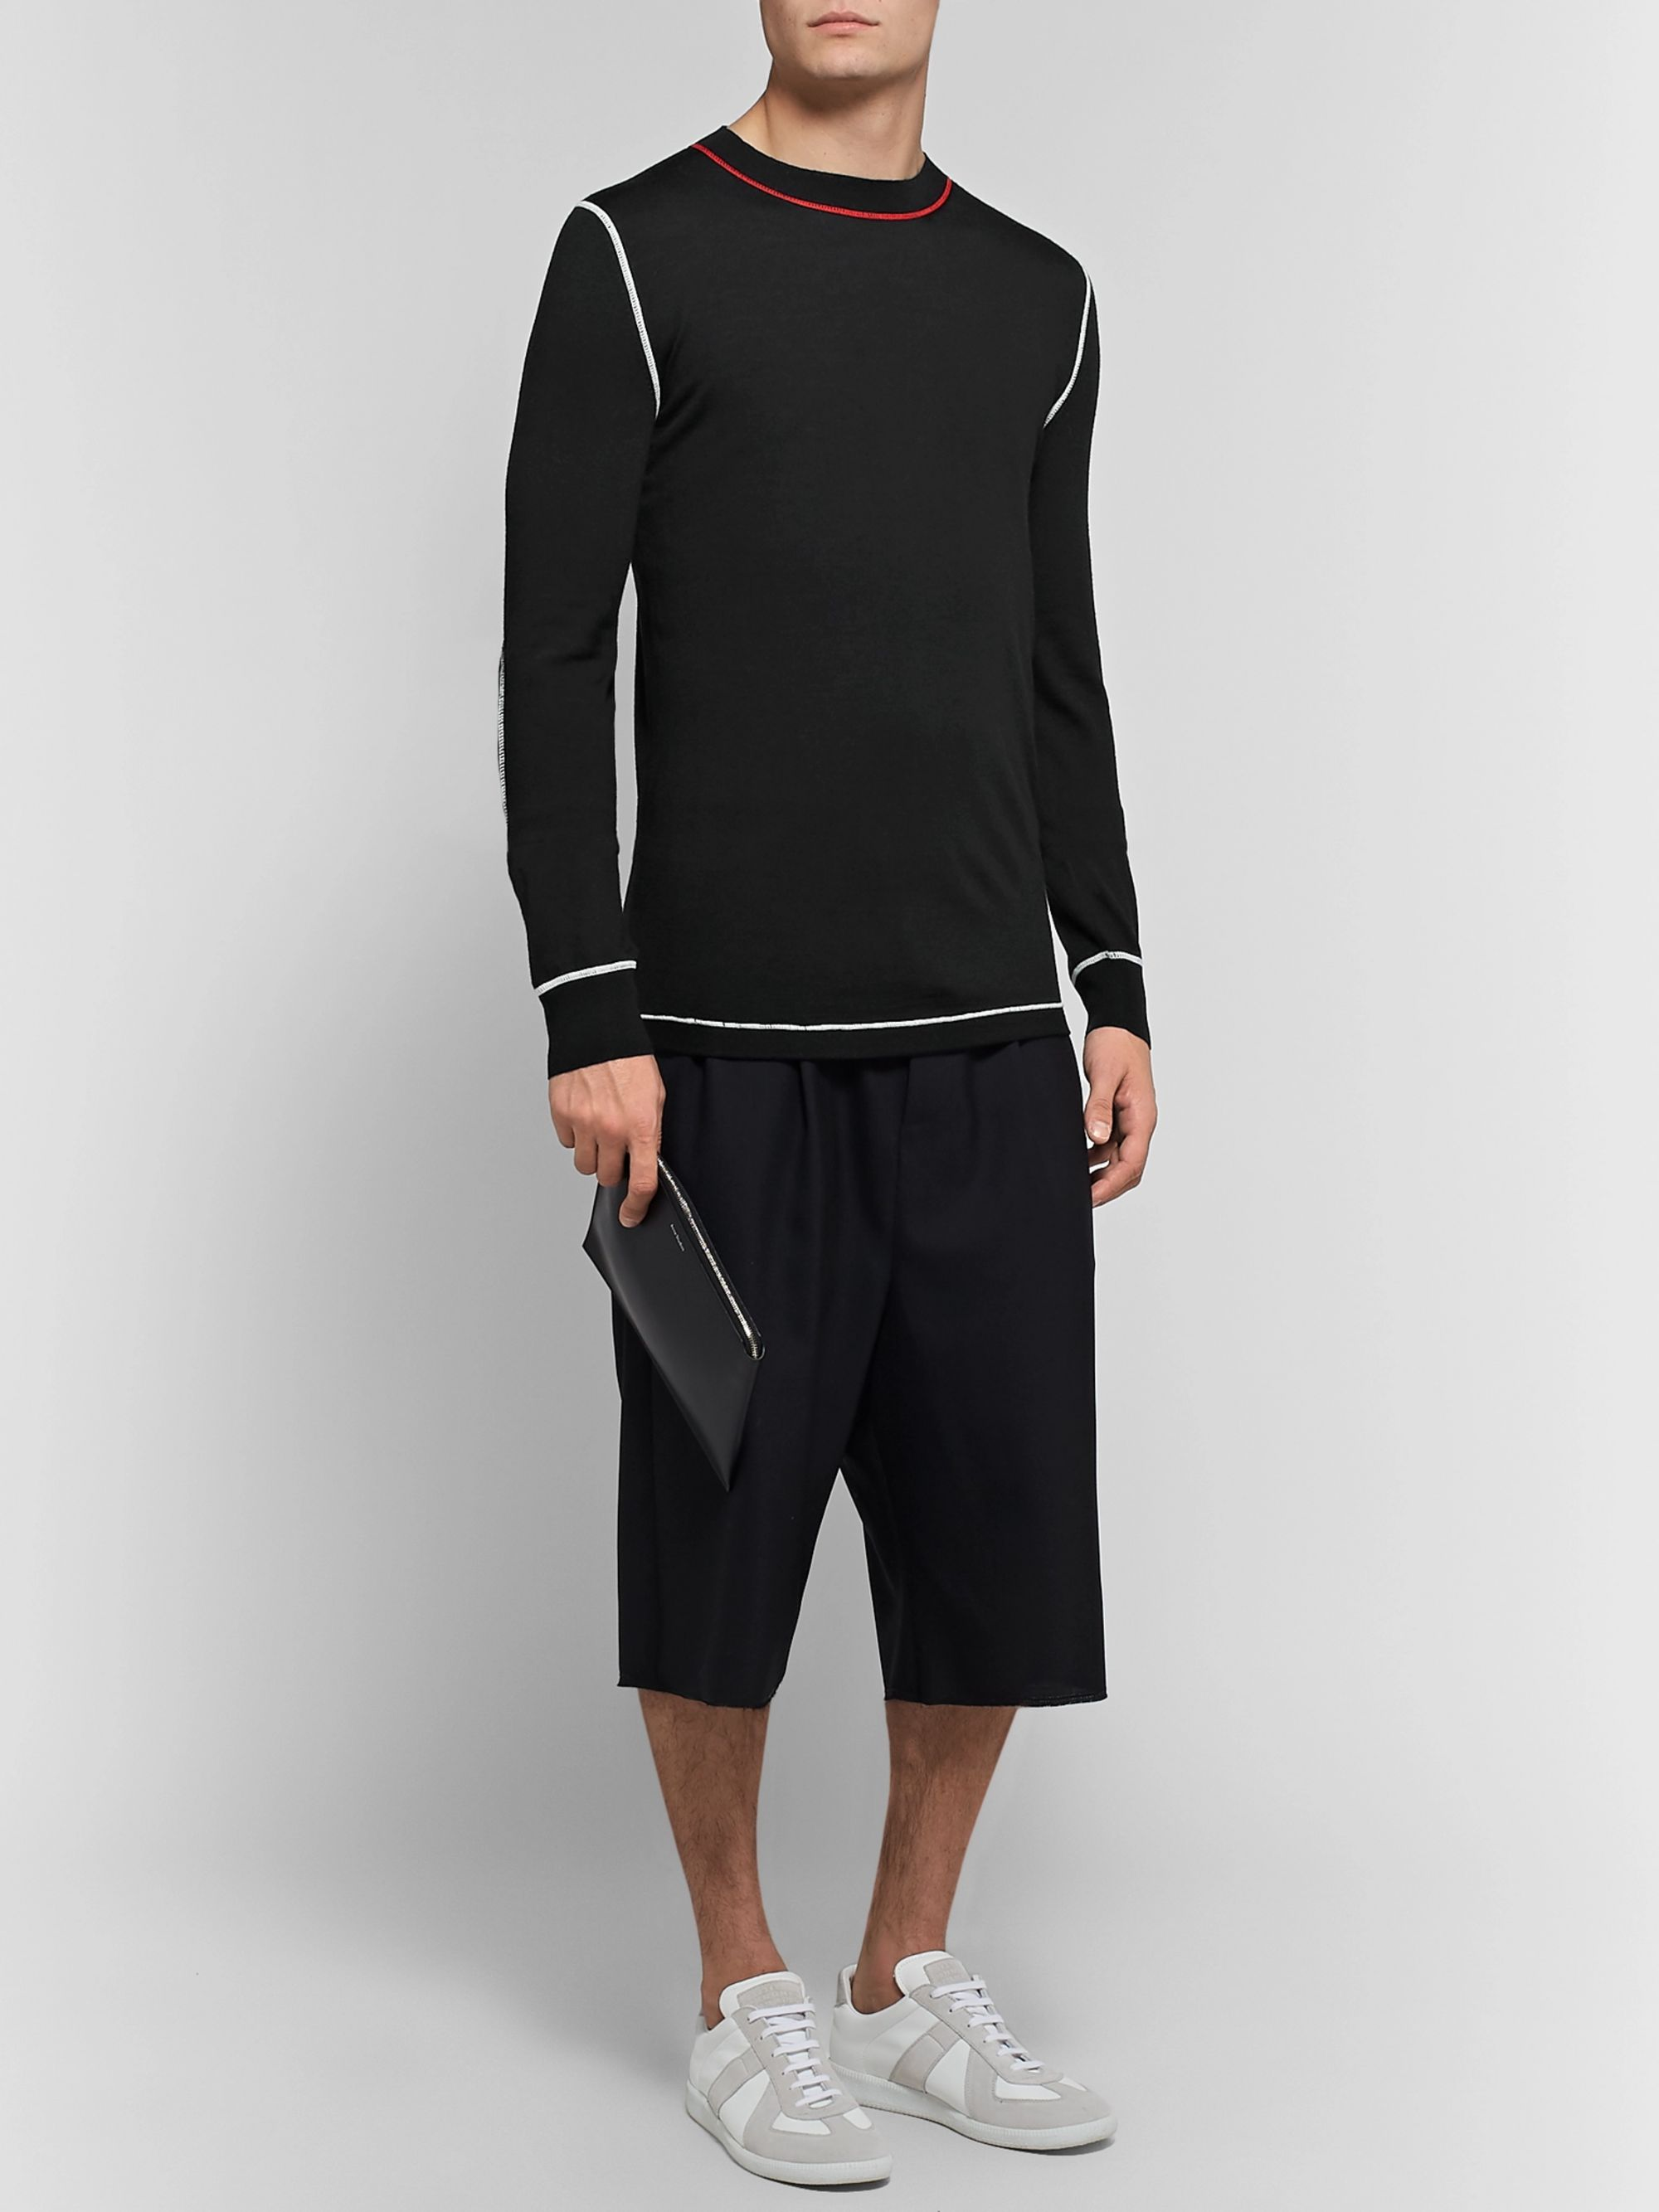 Maison Margiela Slim-Fit Wool-Blend Sweater